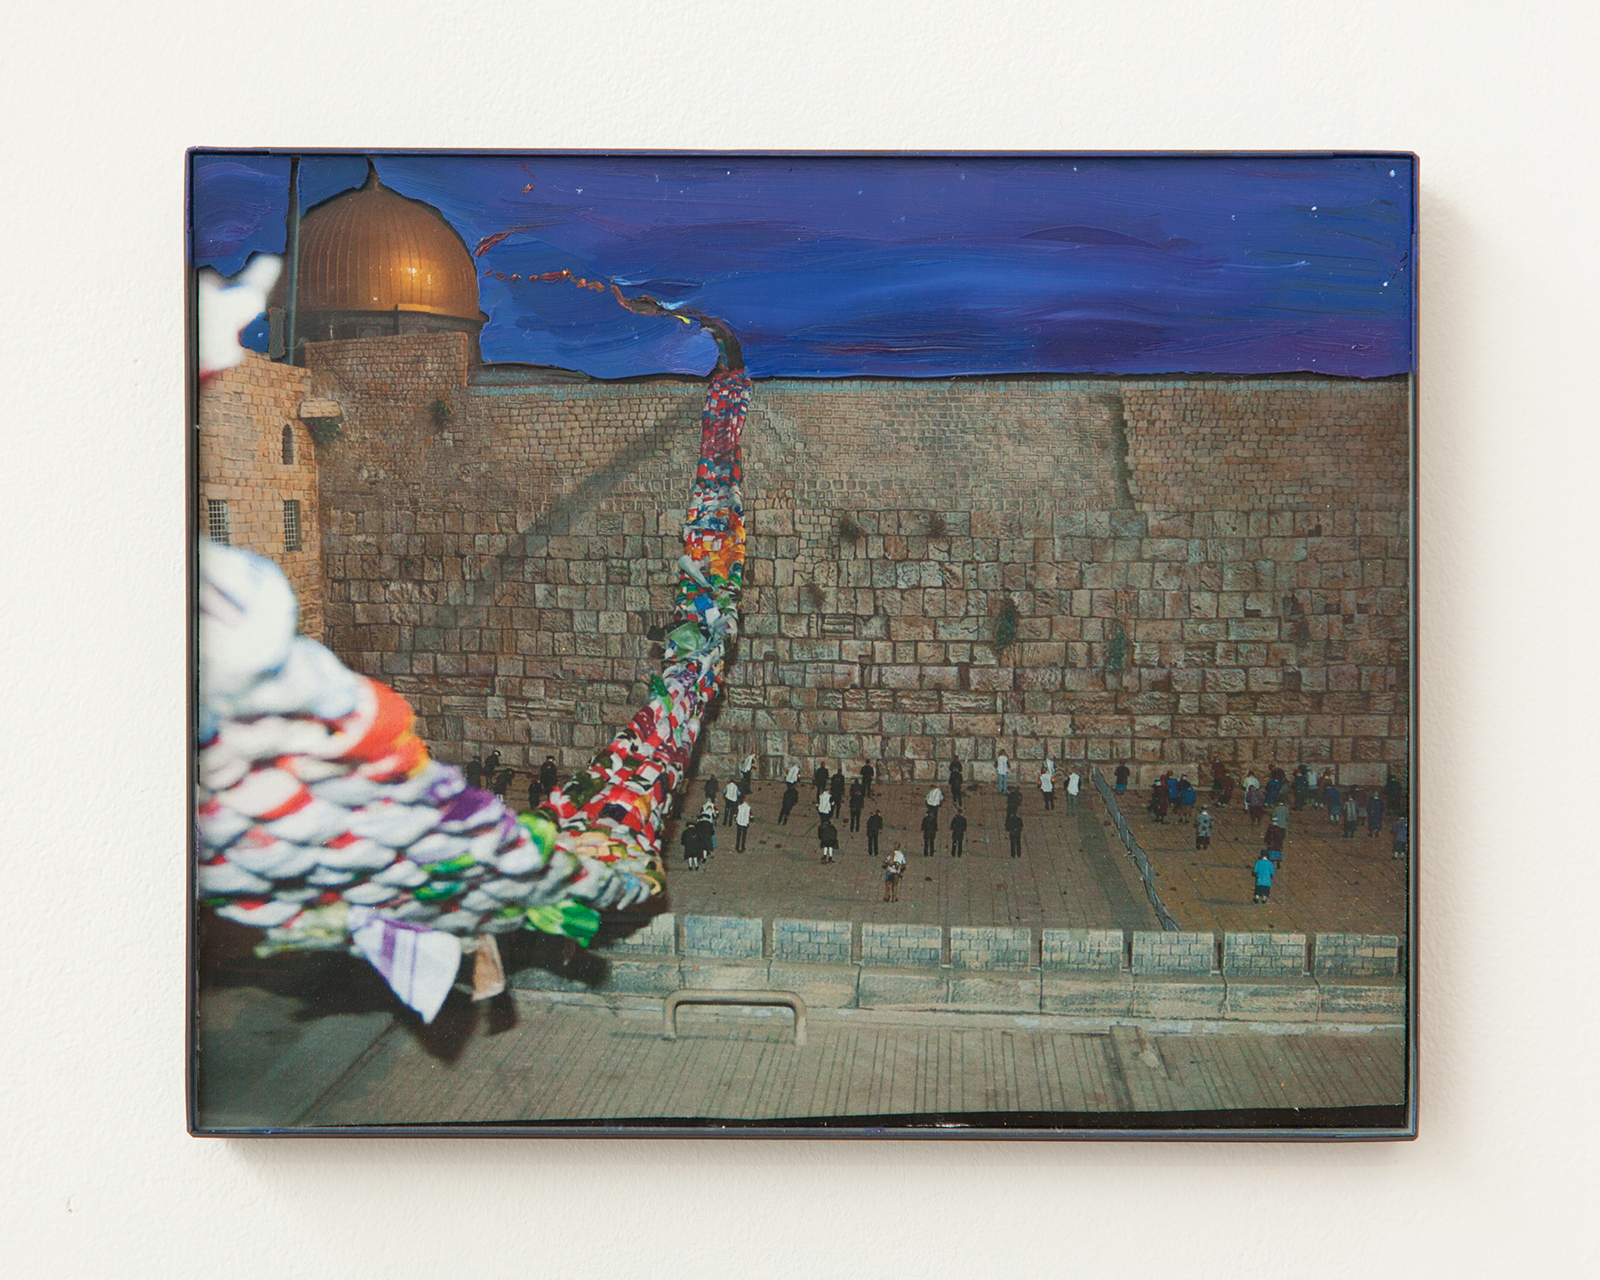 """2014, photograph of """"Western Wall"""" diorama installation, glass, frame, oil, pencil, 8 x 10 inches"""